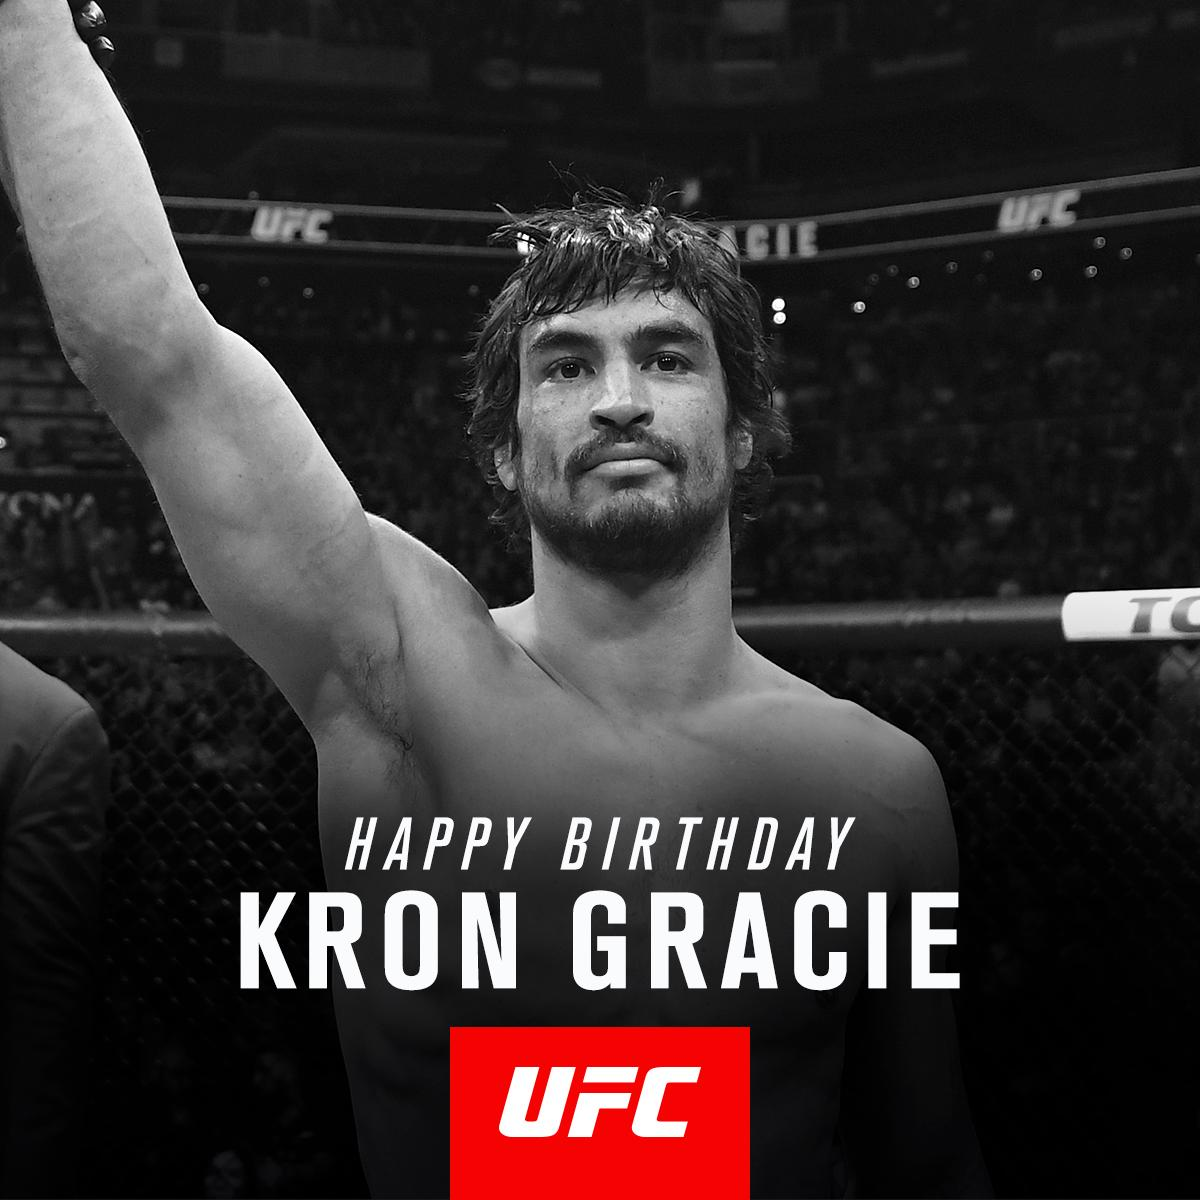 Enjoy your special day.  Happy Birthday @Gracie_Kron! https://t.co/Gv6eUmW08Y